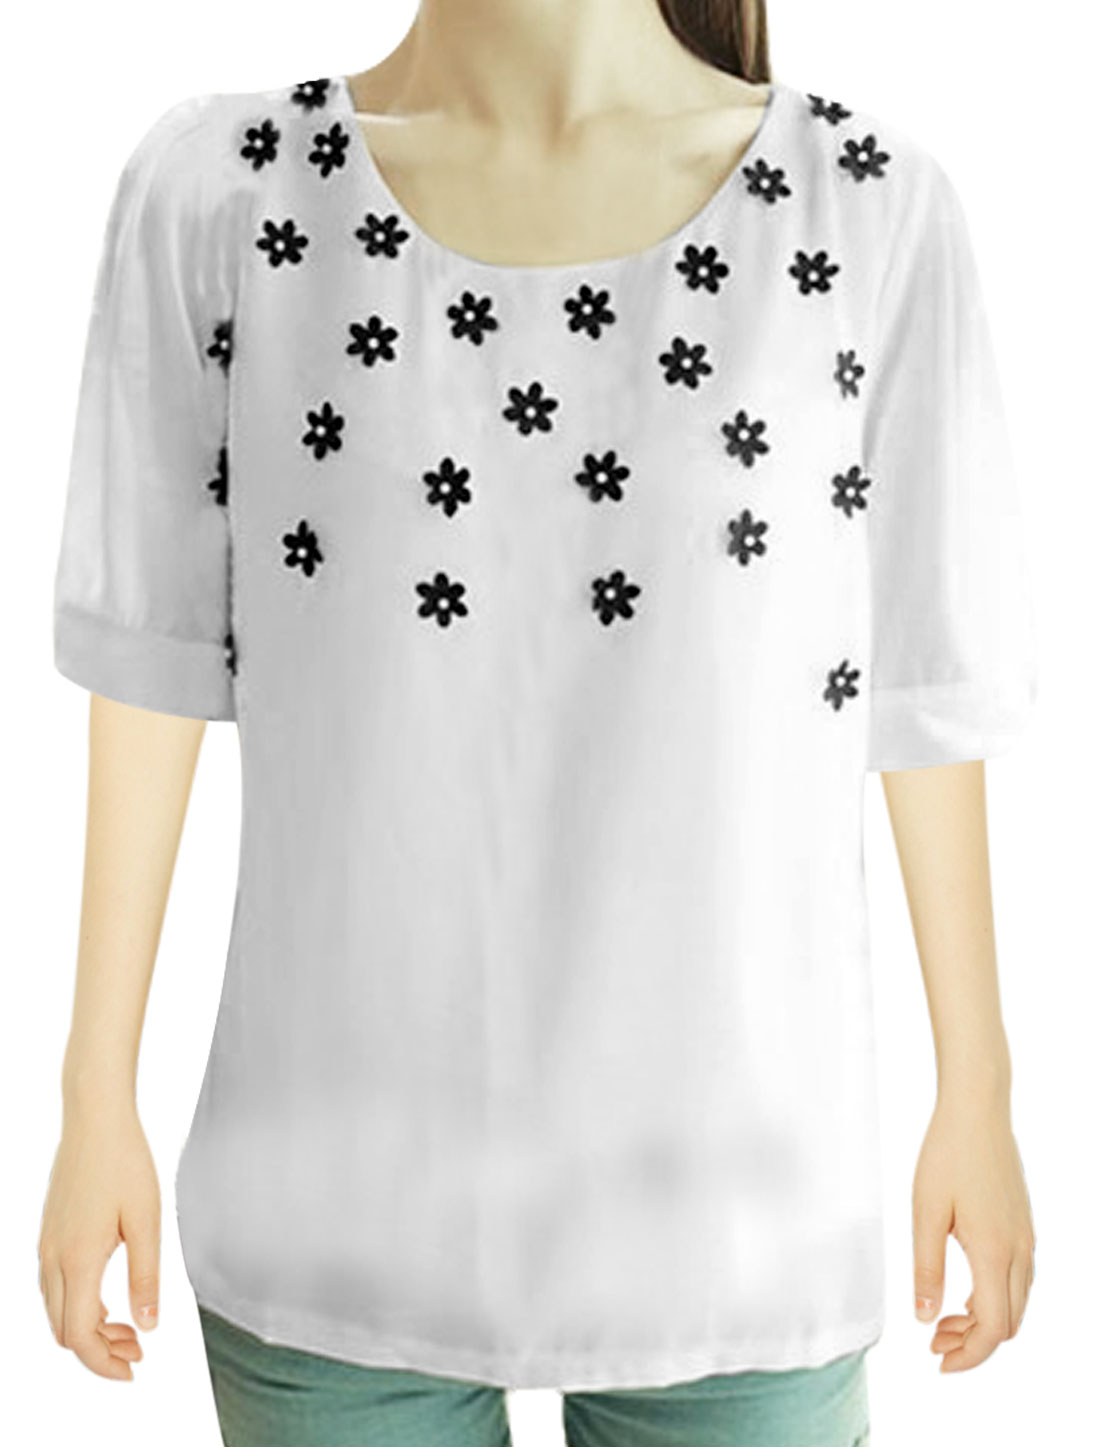 Ladies Round Neck Pullover Solid Flower Decor Top Shirt White XS